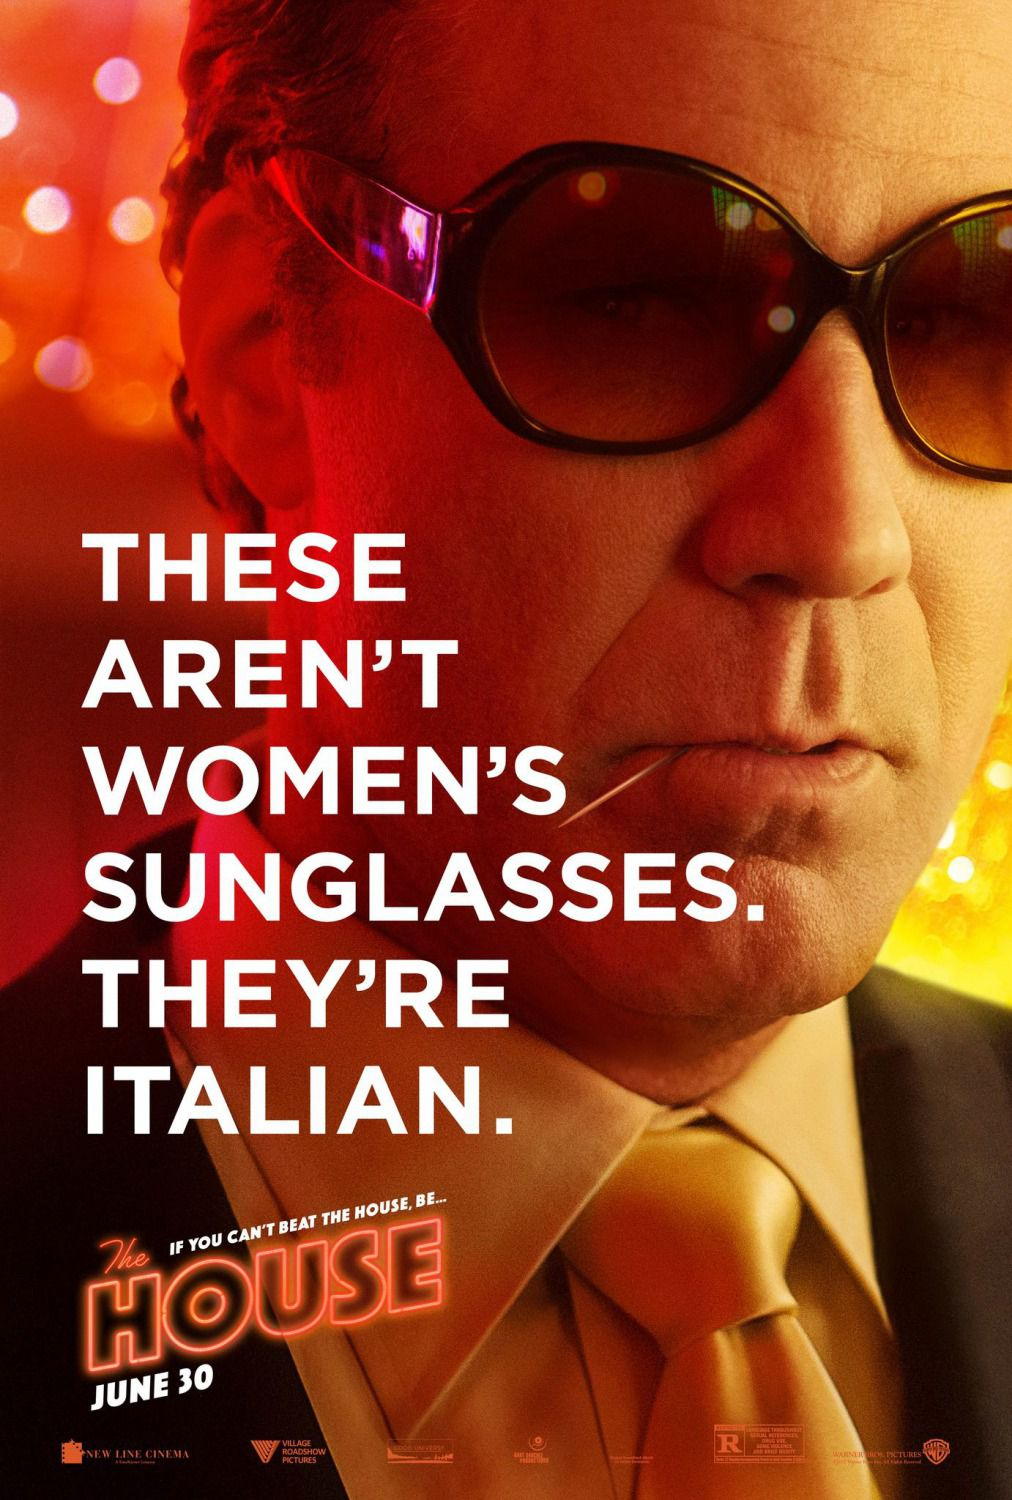 The House - film comedy poster - Will Ferrell - these aren't women's sunglasses they're italian